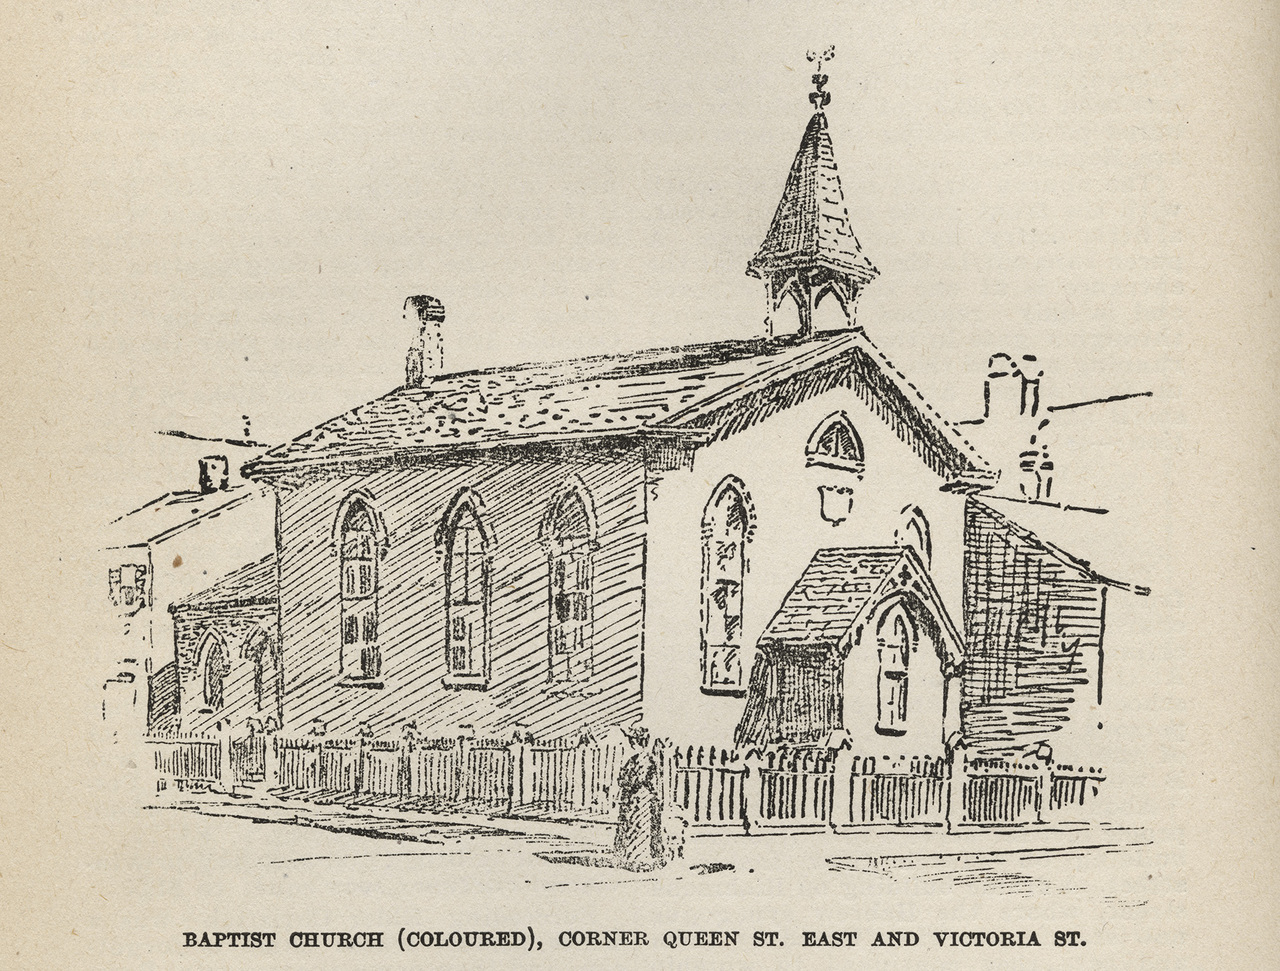 Toronto's First Baptist Church